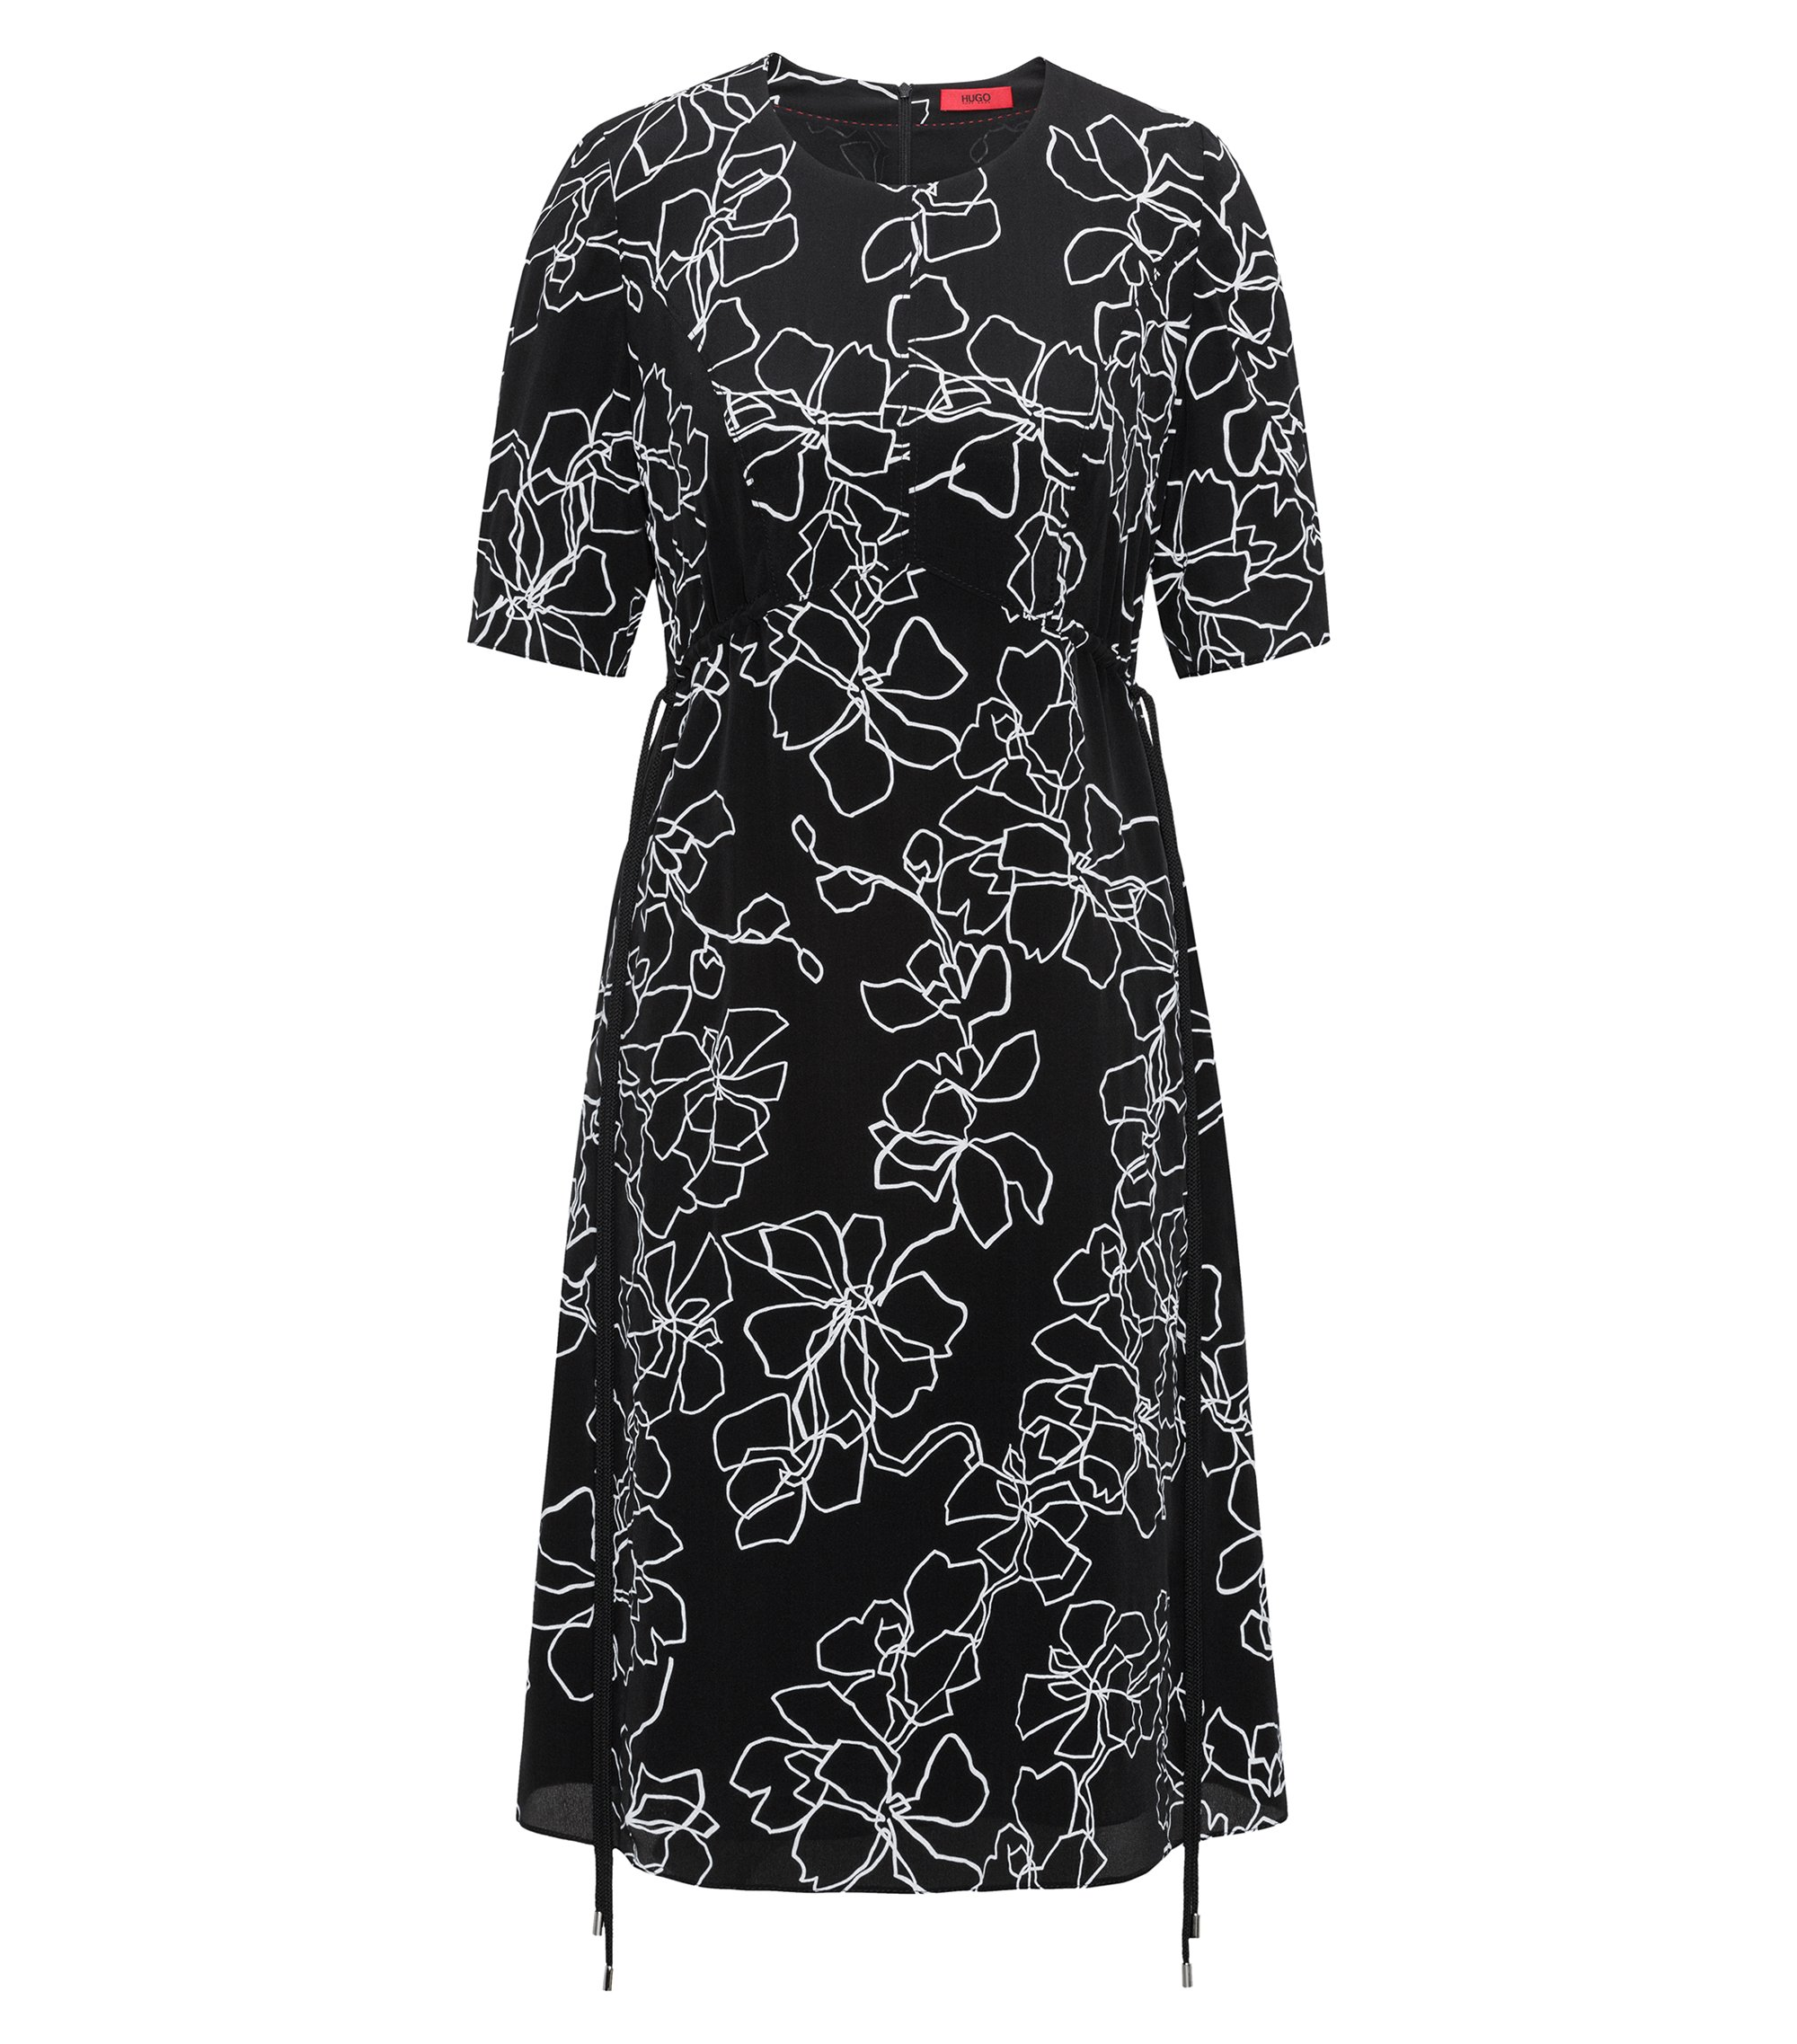 Short-sleeved midi dress in printed silk, Patterned